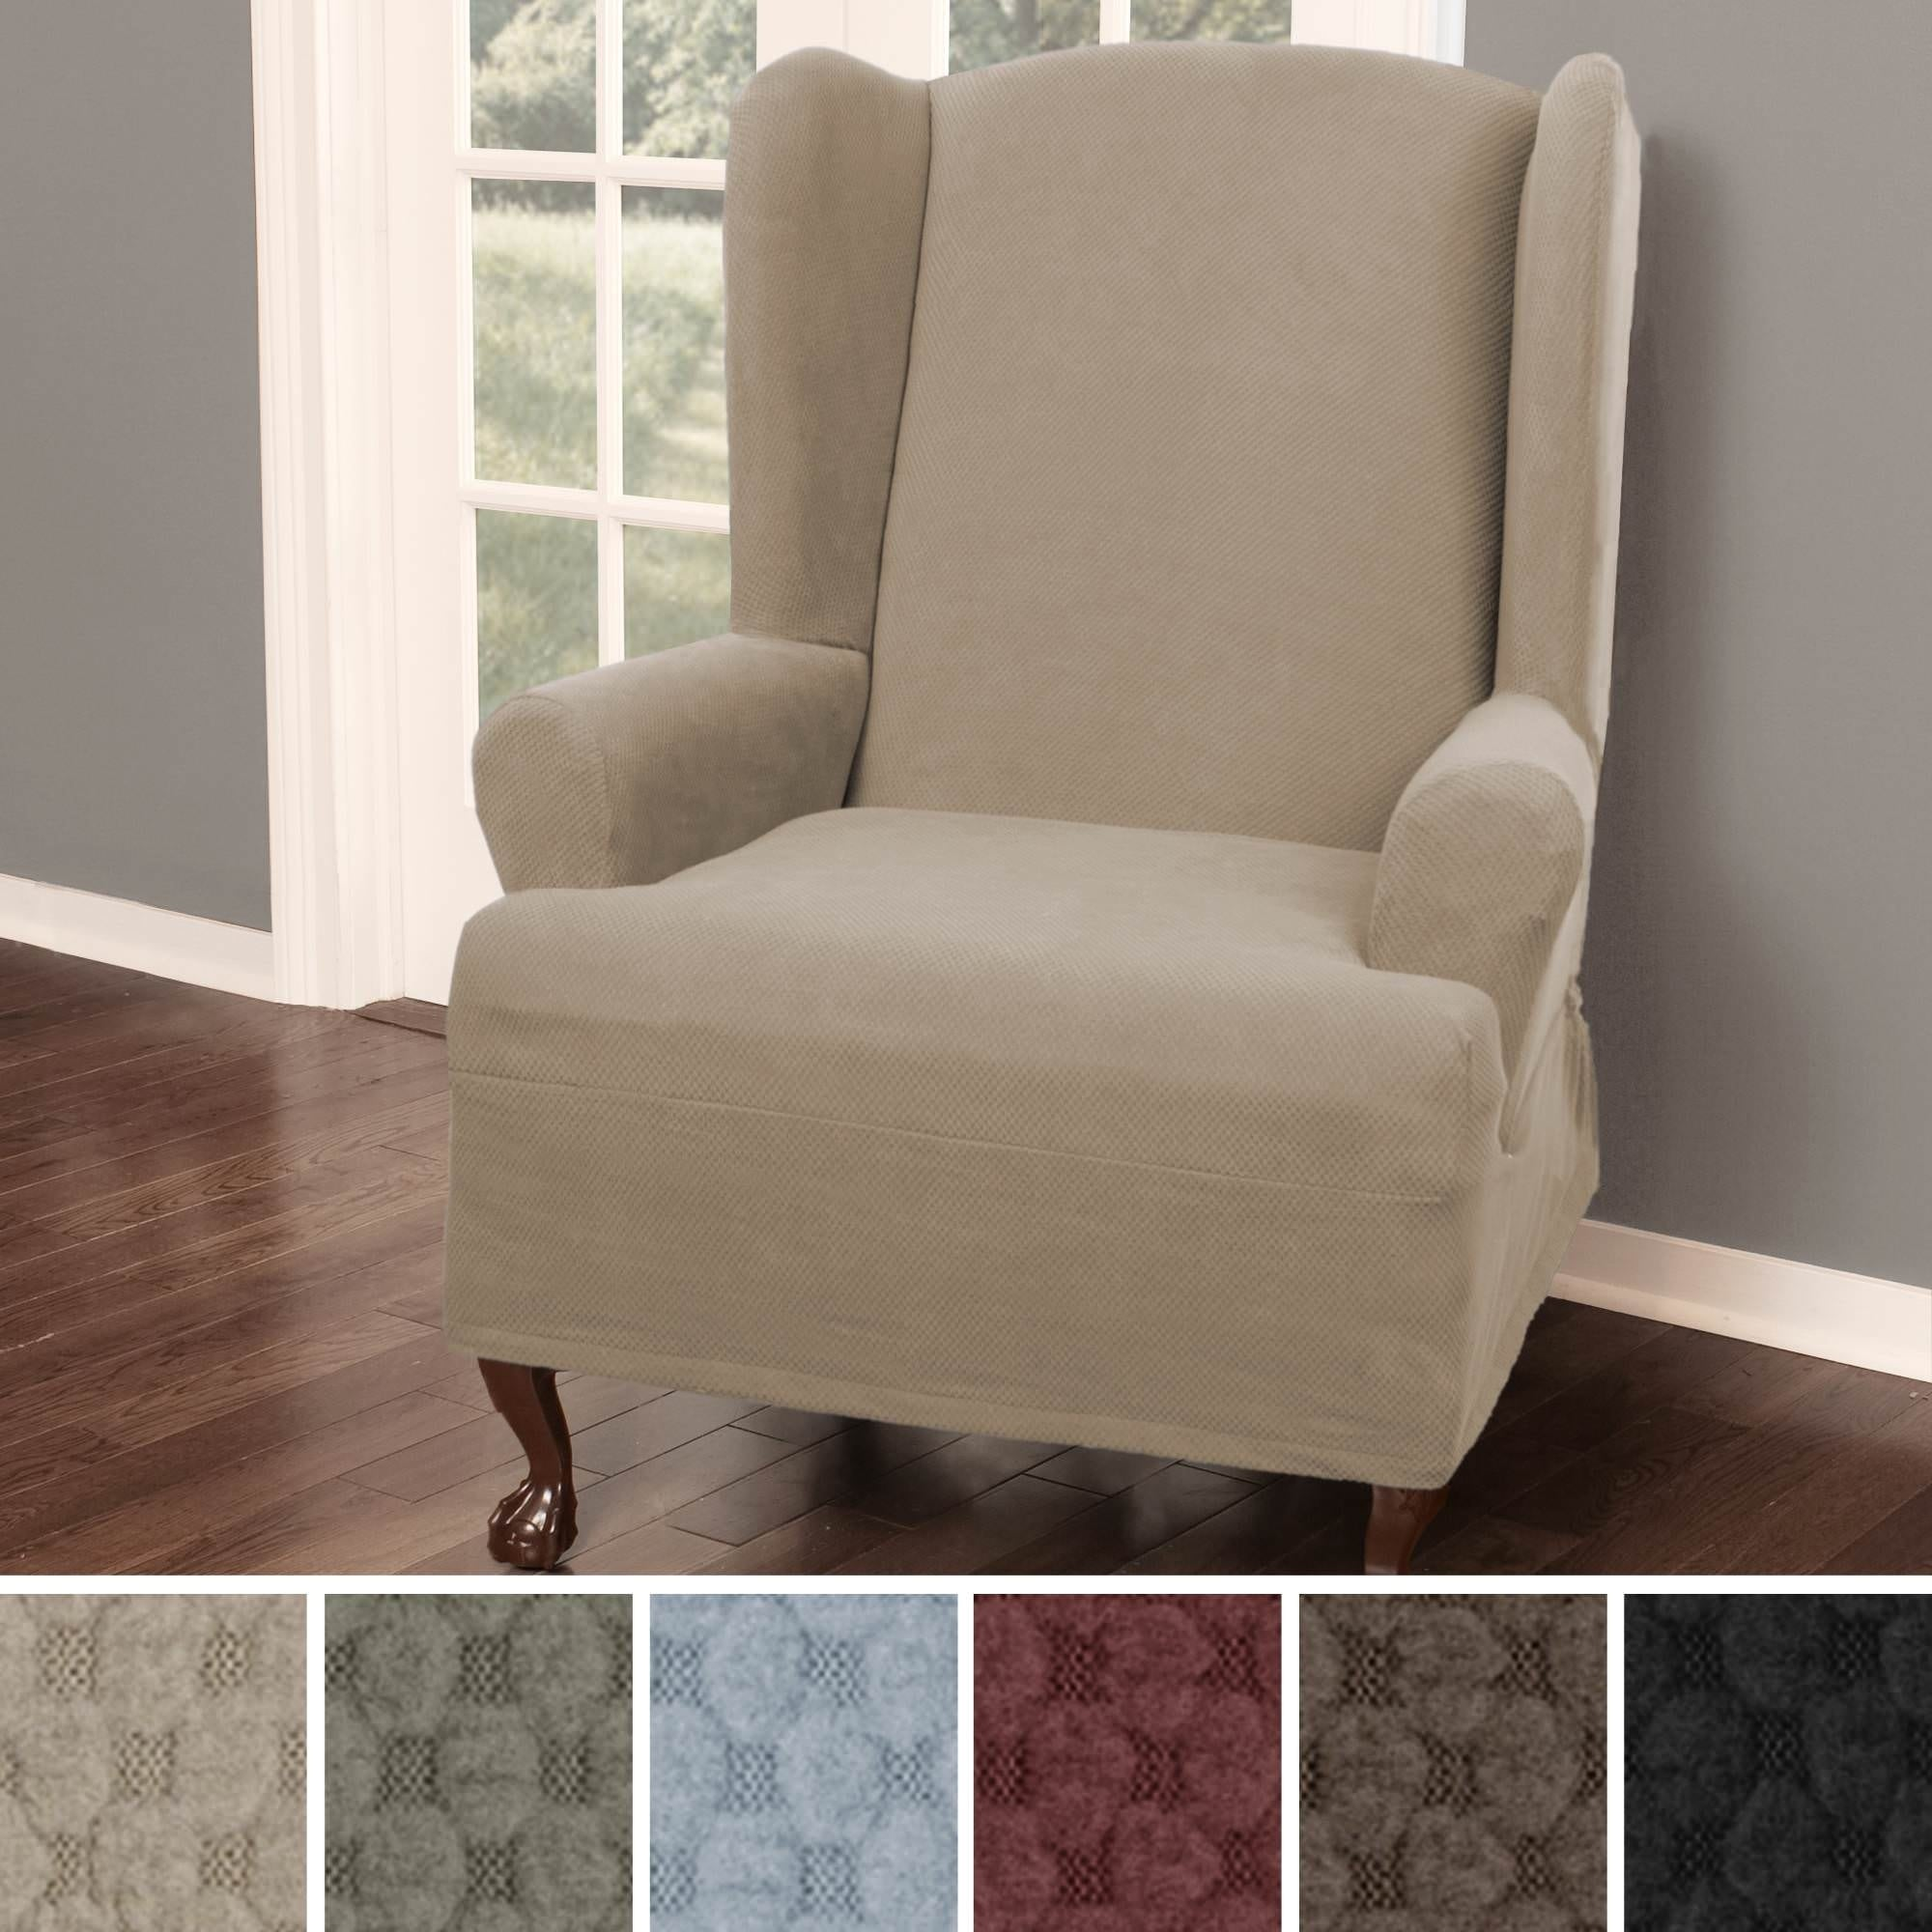 Maytex Pixel Stretch 1 Piece Wing Back Arm Chair Slipcover